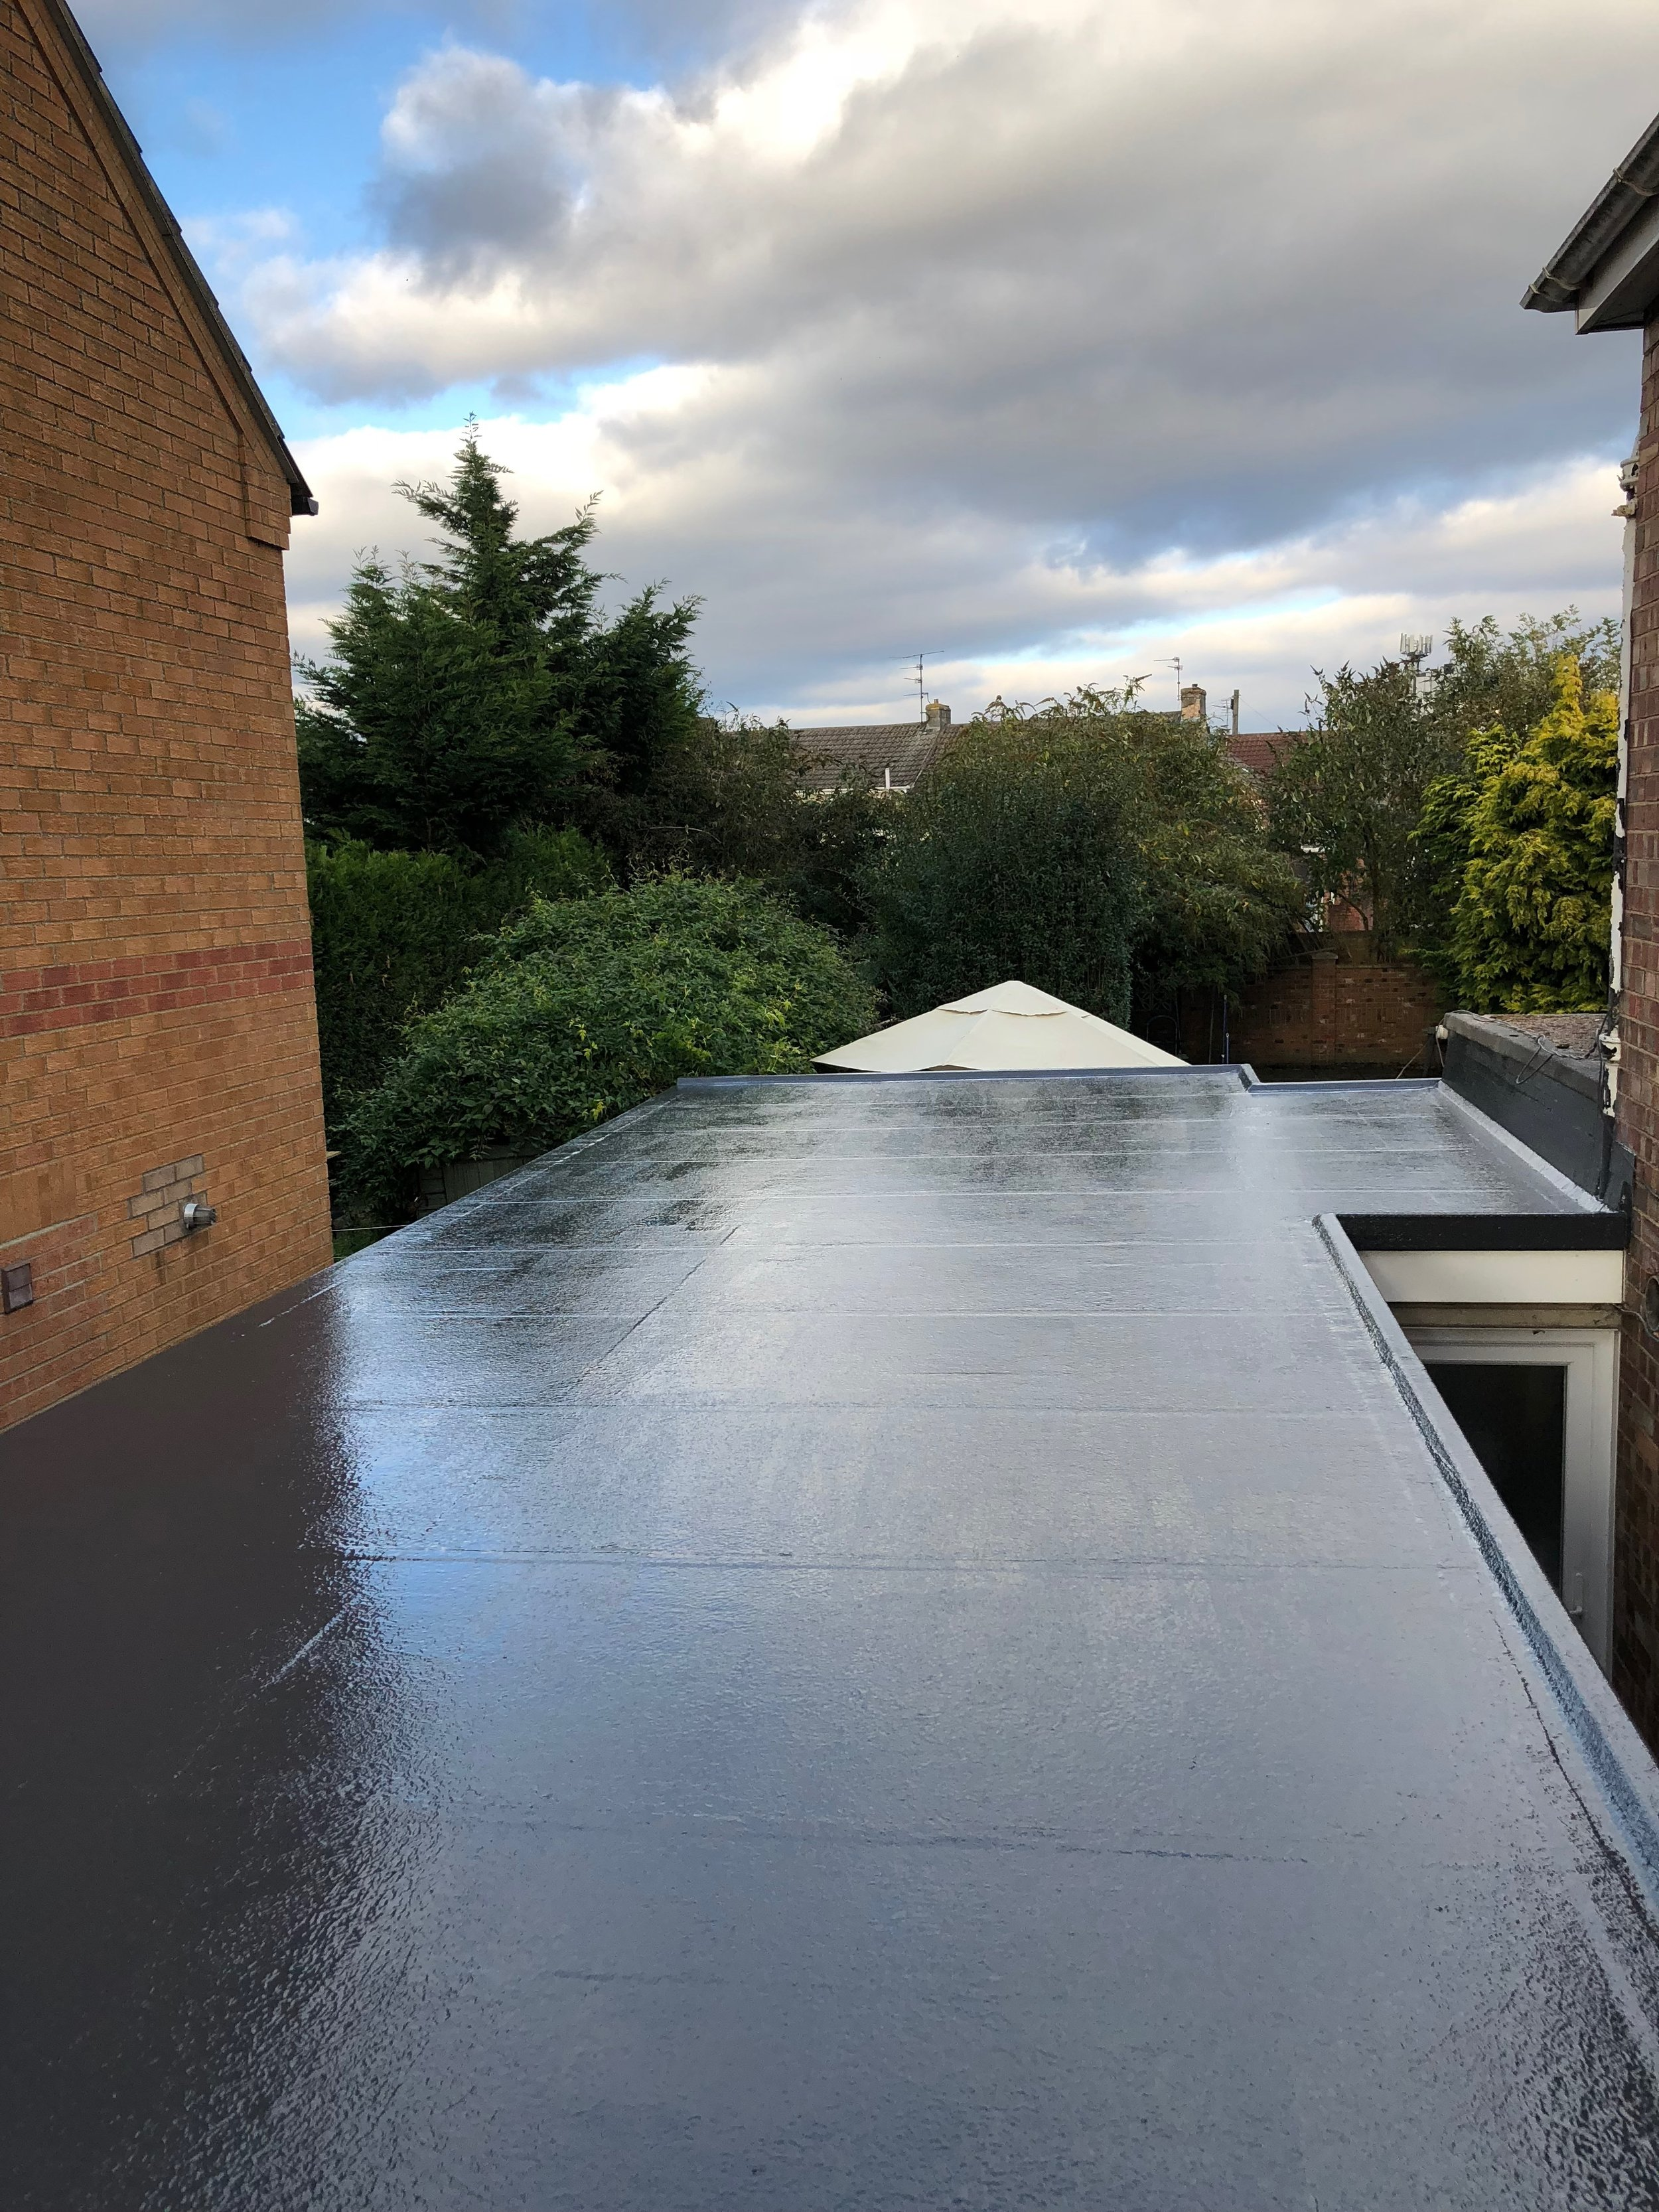 Fibreglass Flat Roofing - The ultimate in high performance Flat Roofing backed up with a 25 year warranty.